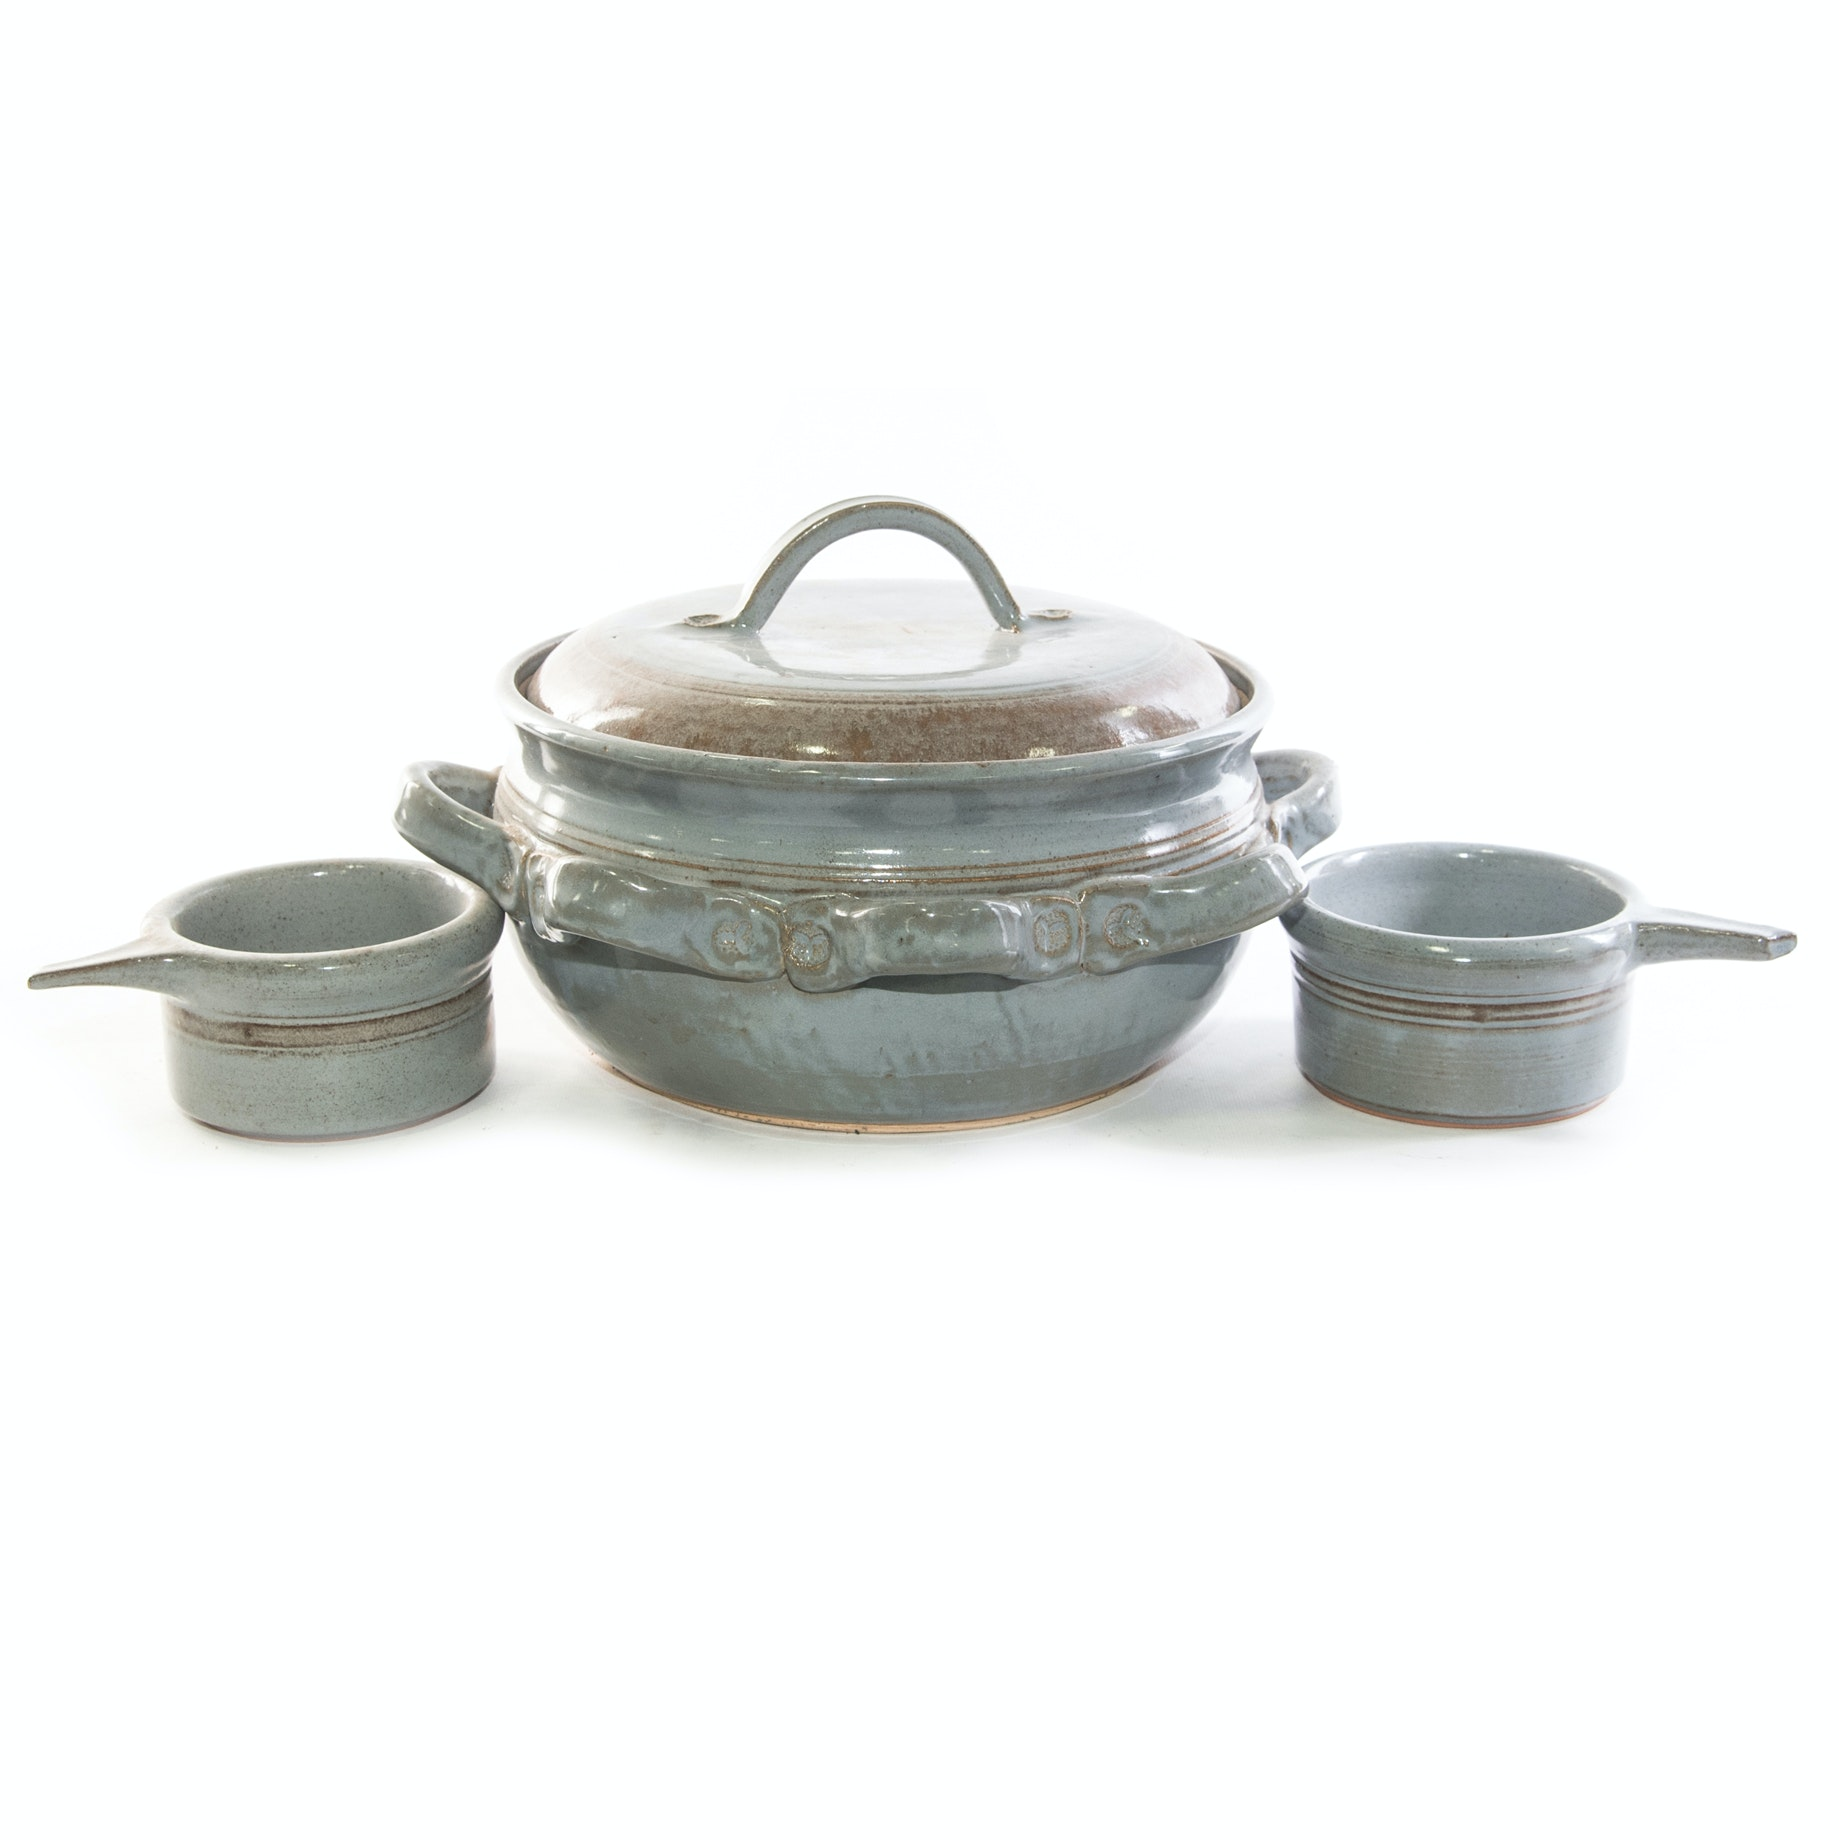 Brown Pottery Soup Tureen with Matching Bowls